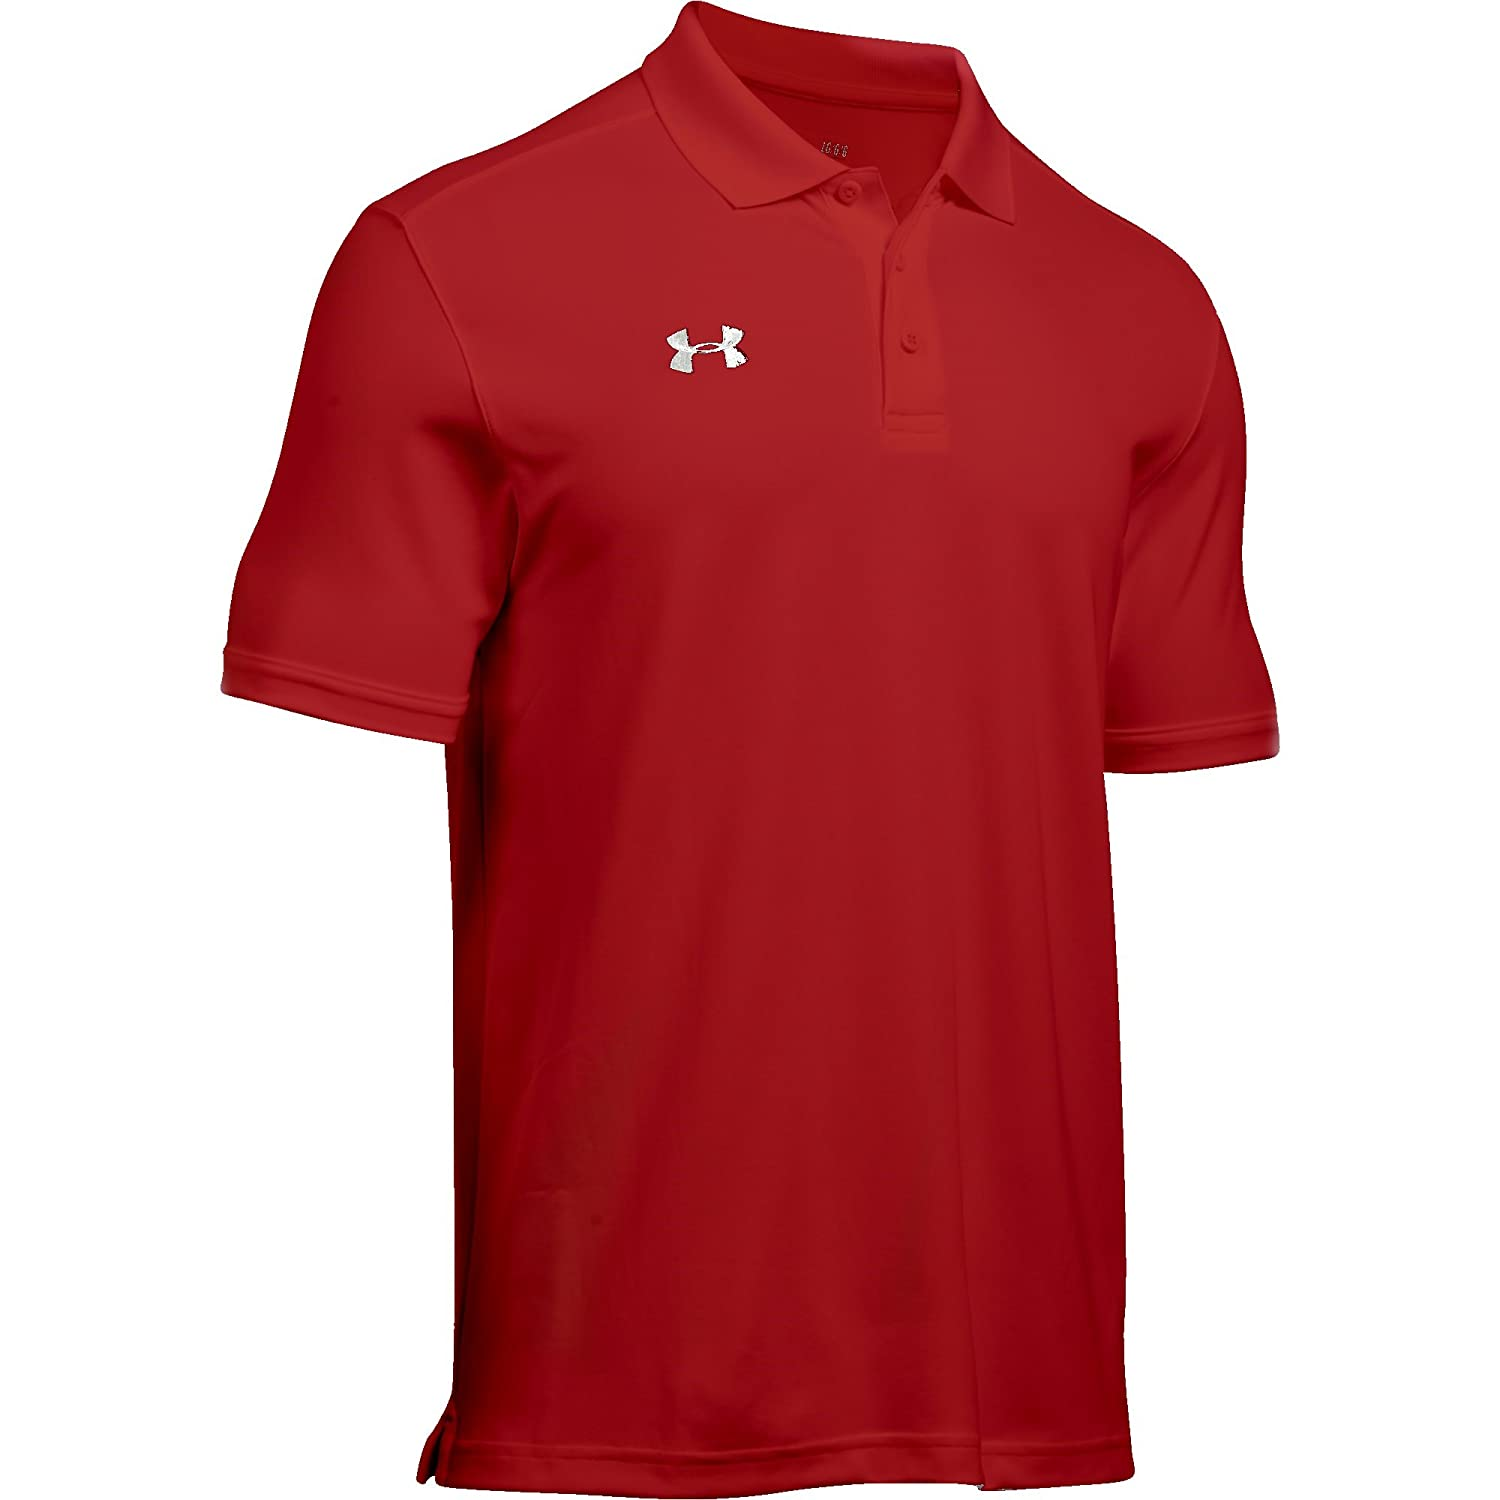 Under Armour SHIRT メンズ B0784XRPW3 S|Flawless Flawless S